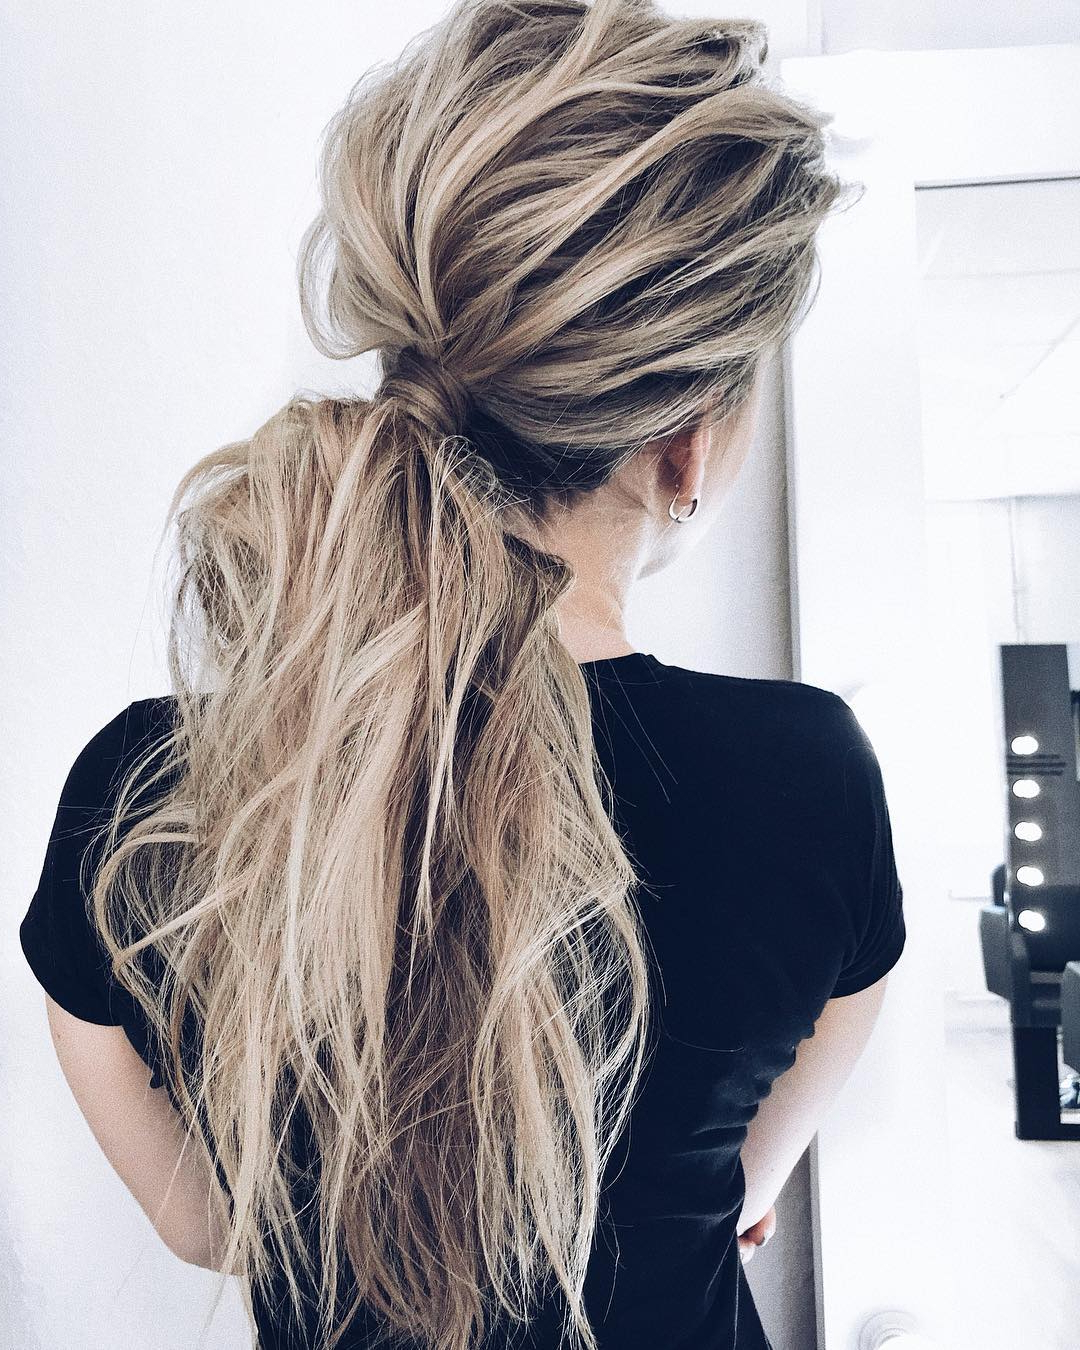 10 Creative Ponytail Hairstyles For Long Hair, Summer Within Well Known Loosely Tied Braid Hairstyles With A Ribbon (Gallery 10 of 20)